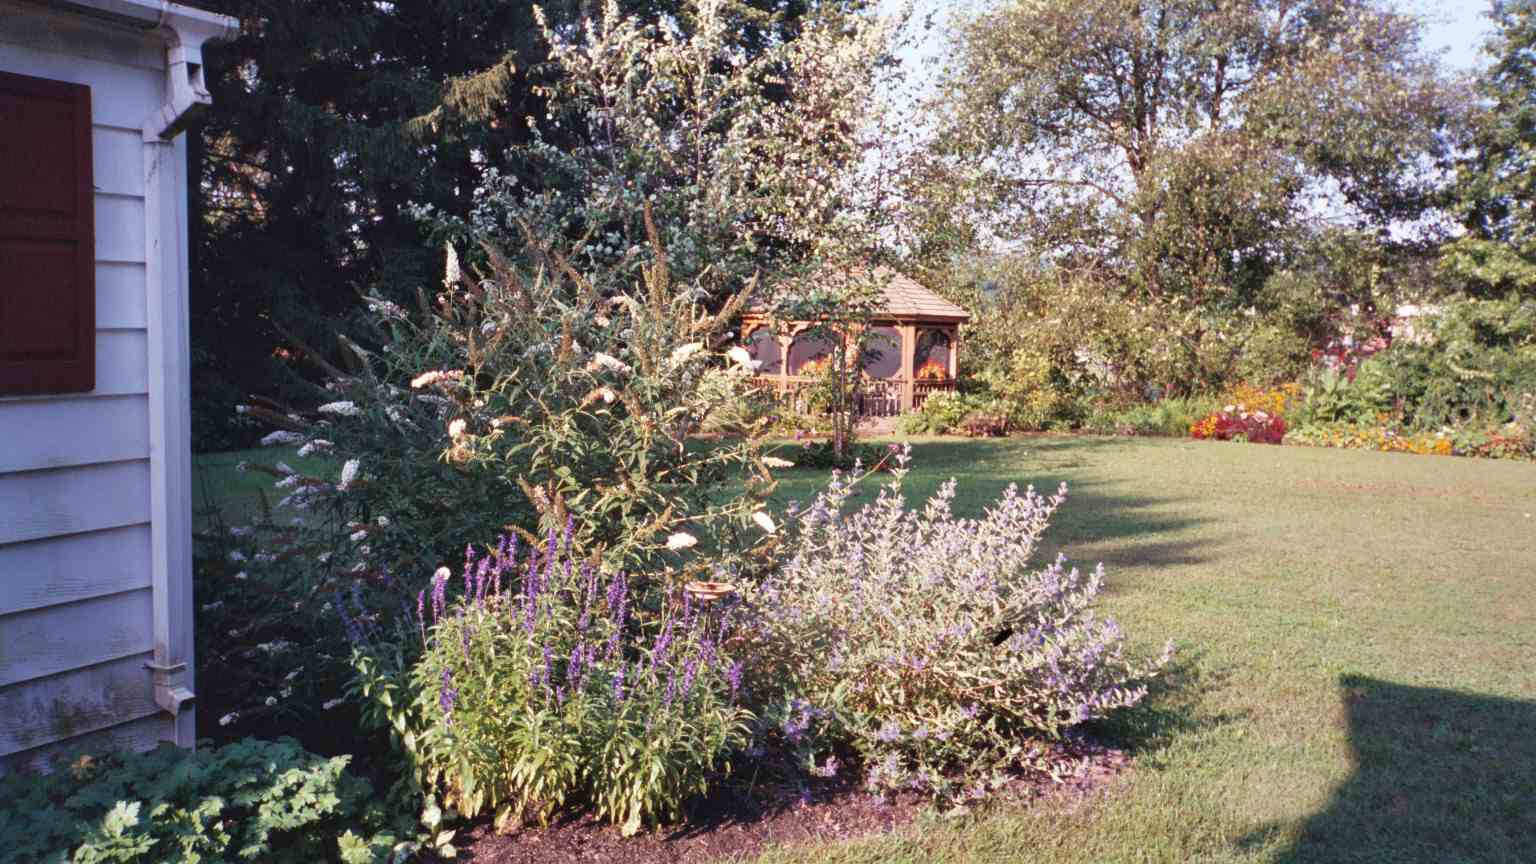 Flowering garden next to house with a defined border and gazebo in the background.